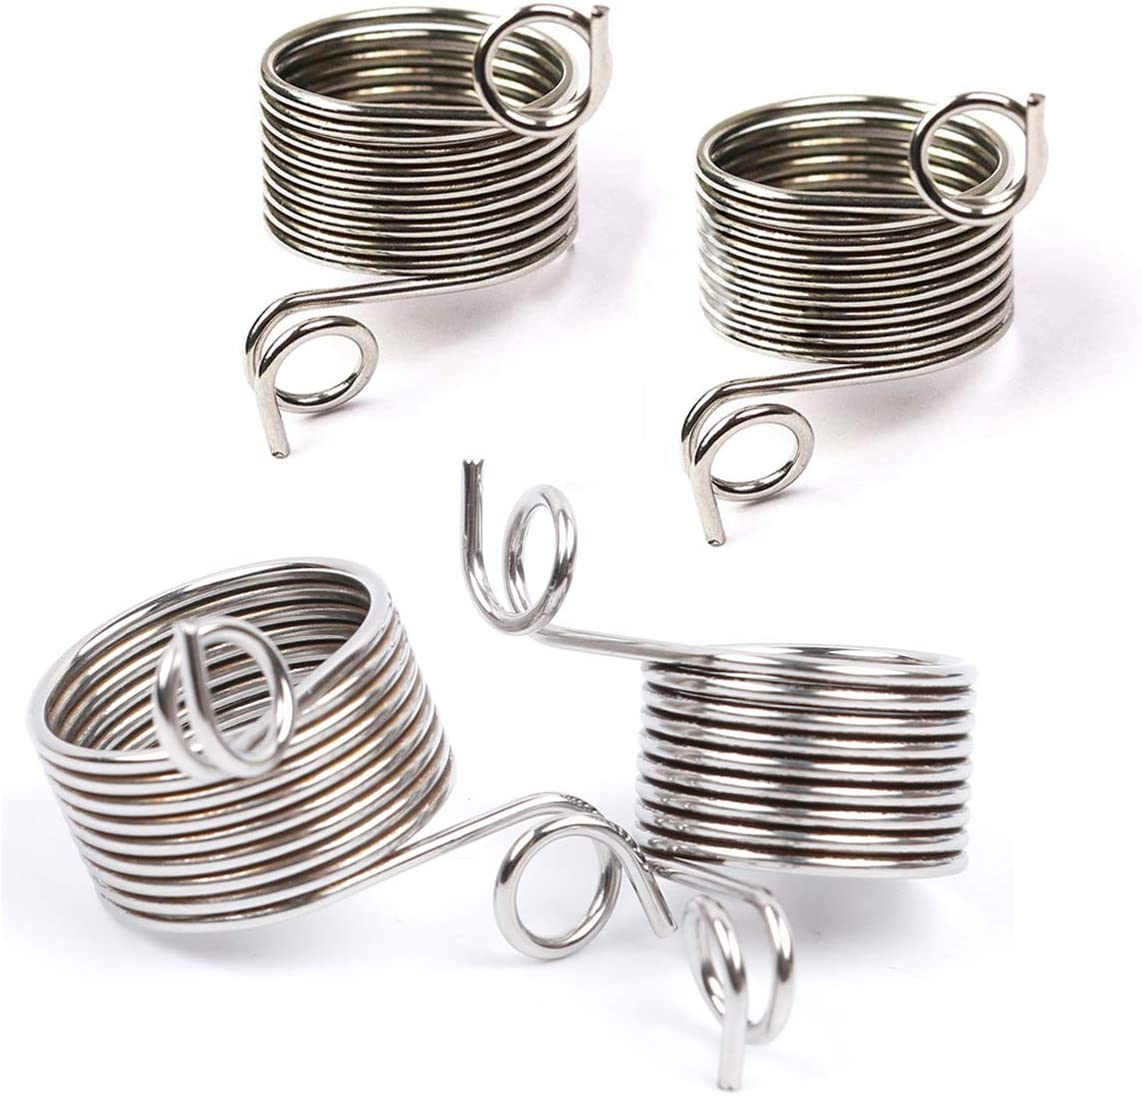 4 Pieces 2 Size Metal Yarn Knitting specialty shop Finger [Alternative dealer] Guide Thimble Holder